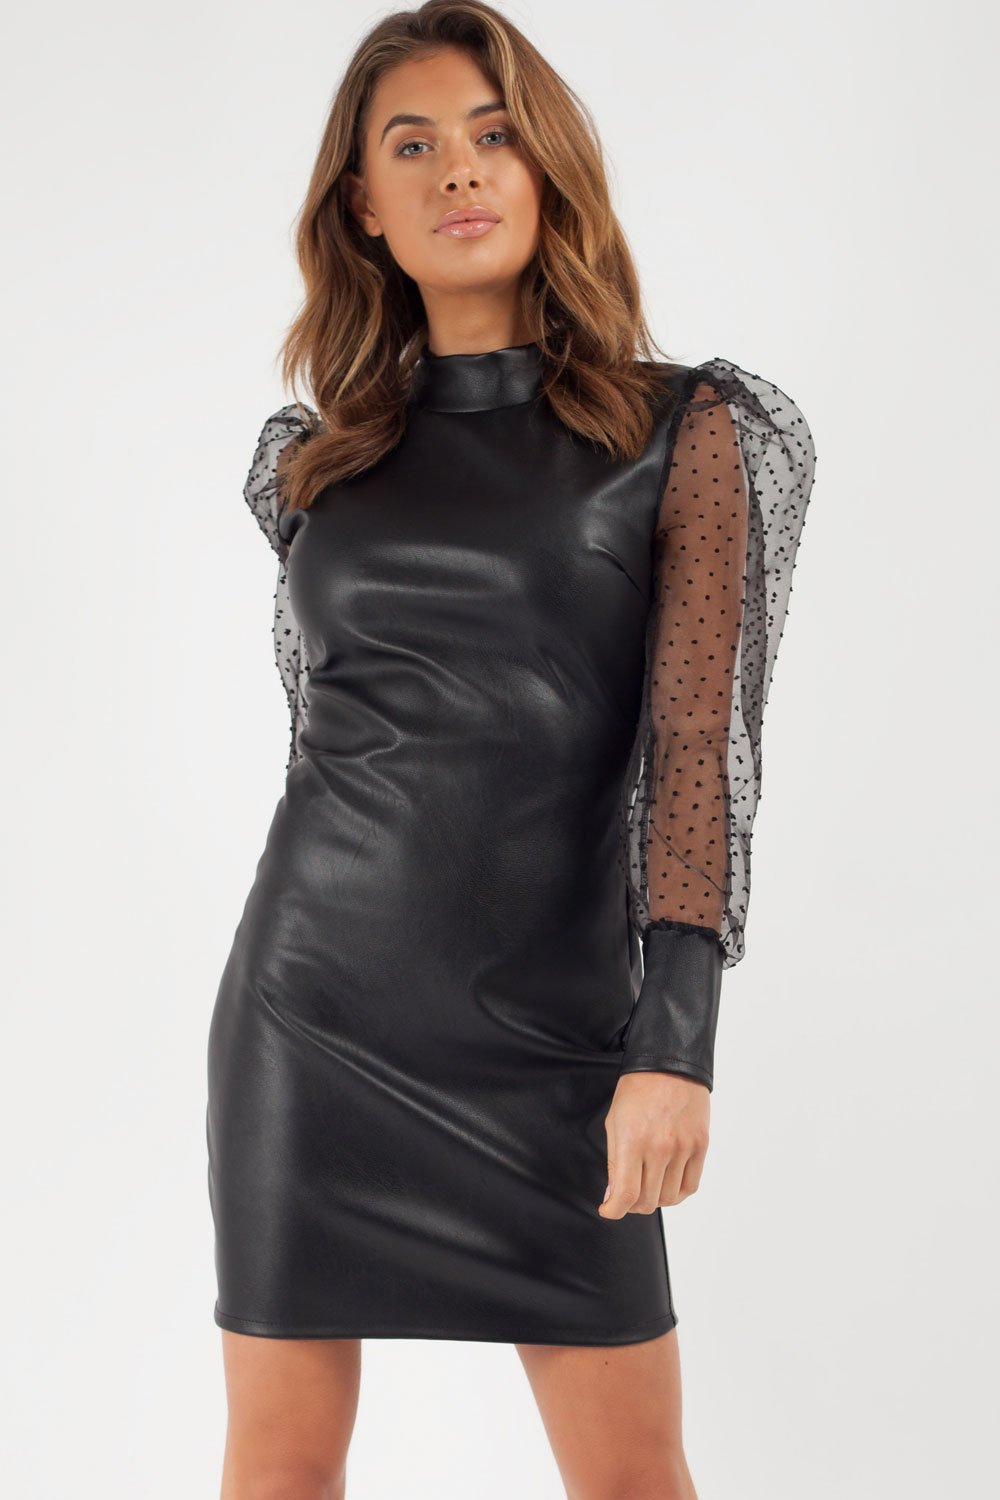 black faux leather dress uk